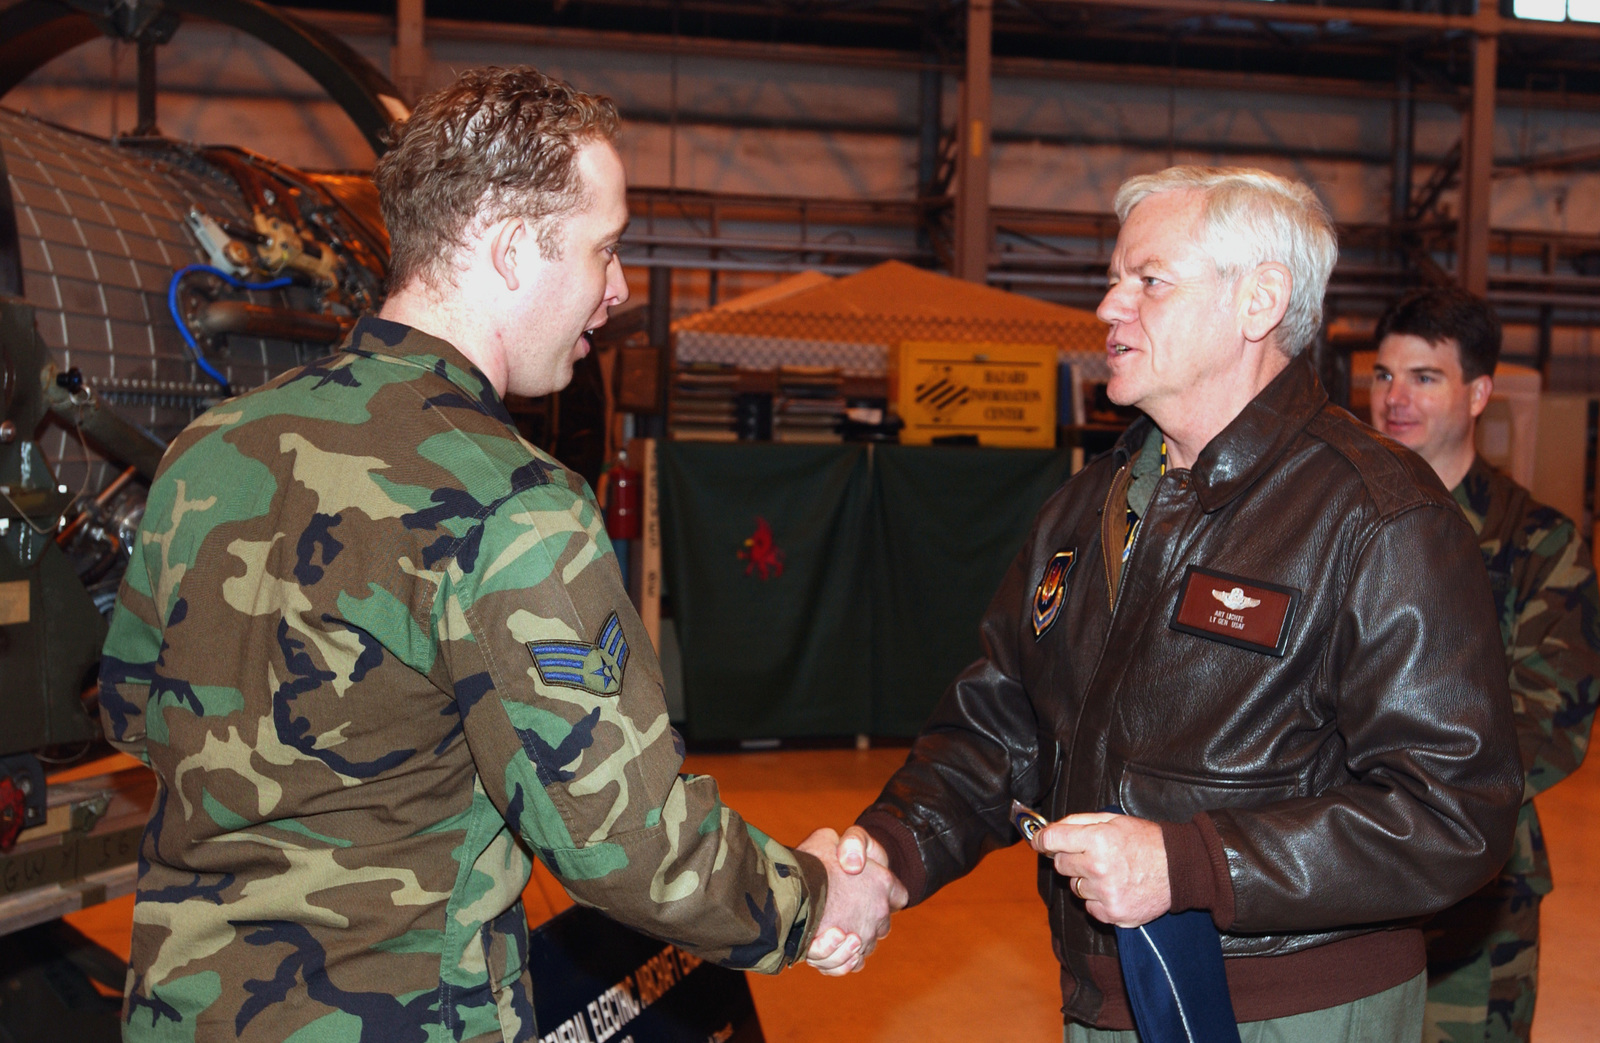 After presenting a quick rundown of the duties performed by the Propulsion Flight, US Air Force (USAF) SENIOR AIRMAN (SRA) Joshua Vines, Support Team Leader, 31st Maintenance Squadron (MXS), Aviano Air Base (AB), Italy, is presented a USAFE coin by USAF Lieutenant General (LGEN) Arthur J. Lichte, Vice-Commander, United States Air Forces in Europe (USAFE). The General is at Aviano AB for an orientation briefing